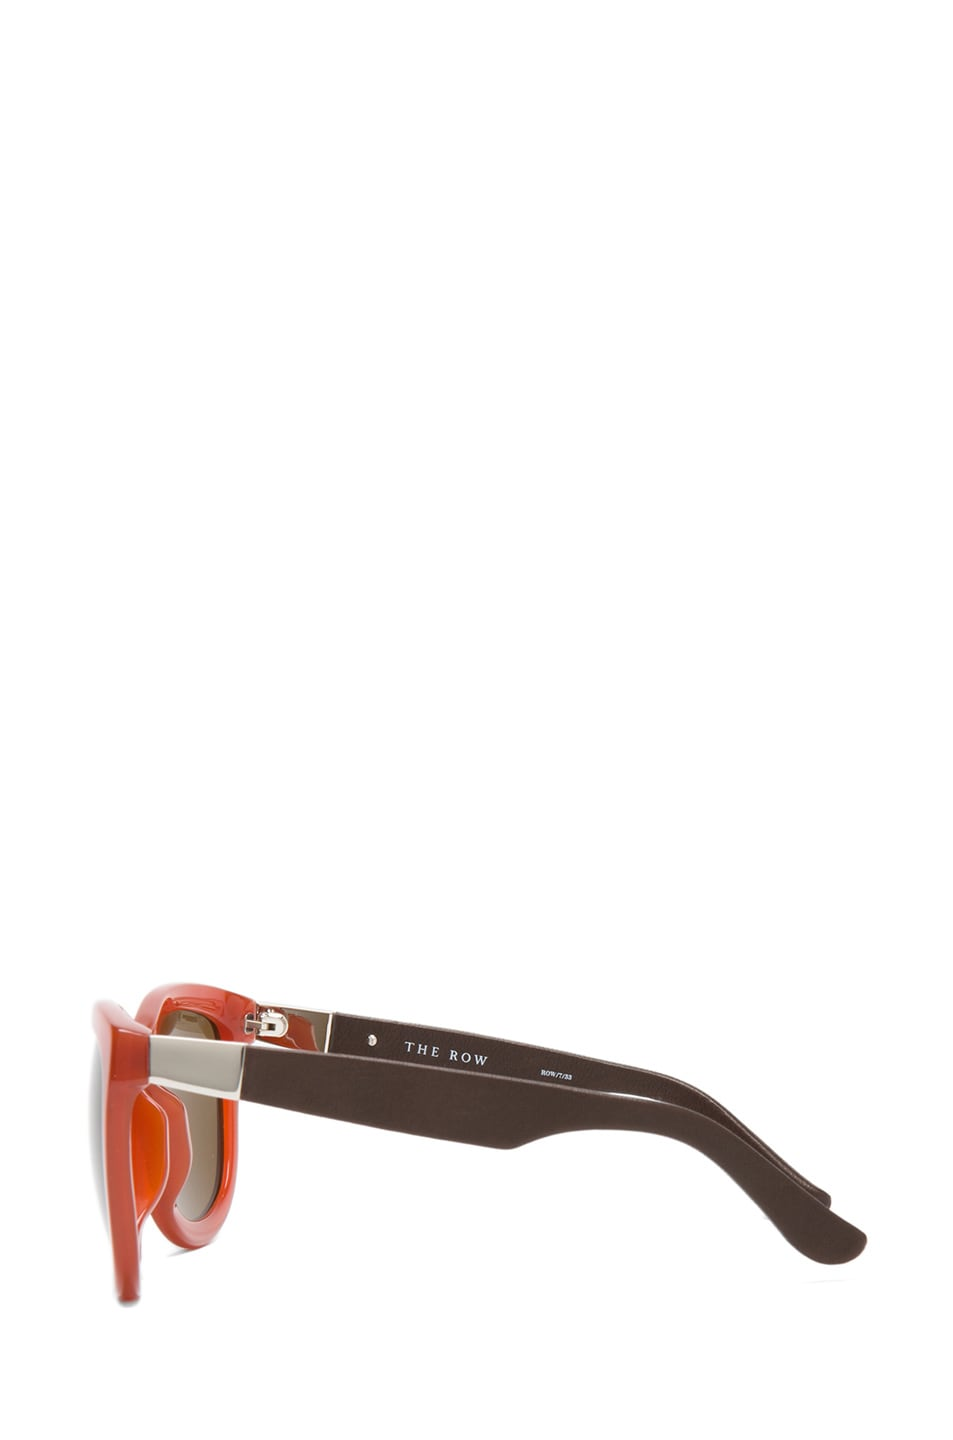 Image 3 of The Row Rounded Wayfarer Sunglasses in Rust & Walnut